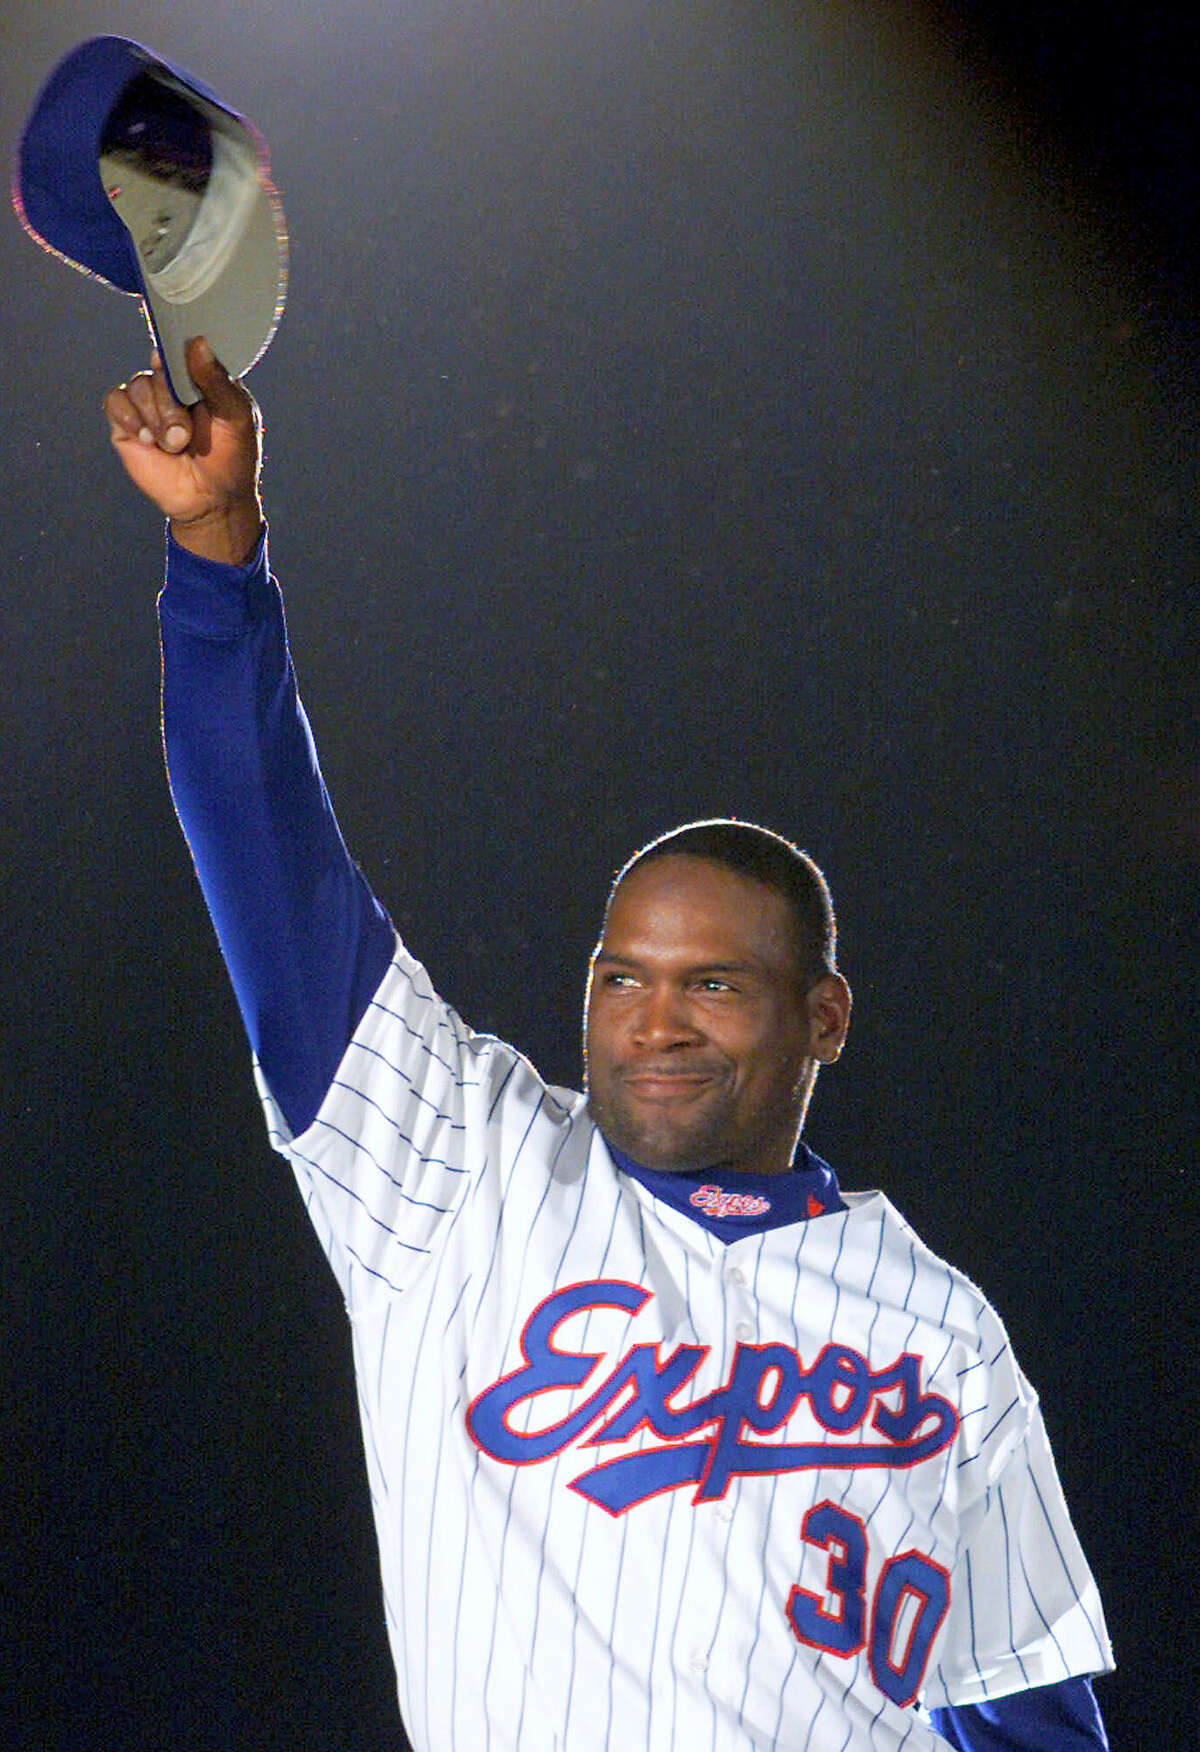 Montreal Expos' Tim Raines acknowledges applause from fans as he is presented before the Expos home opener in Montreal in 2001.